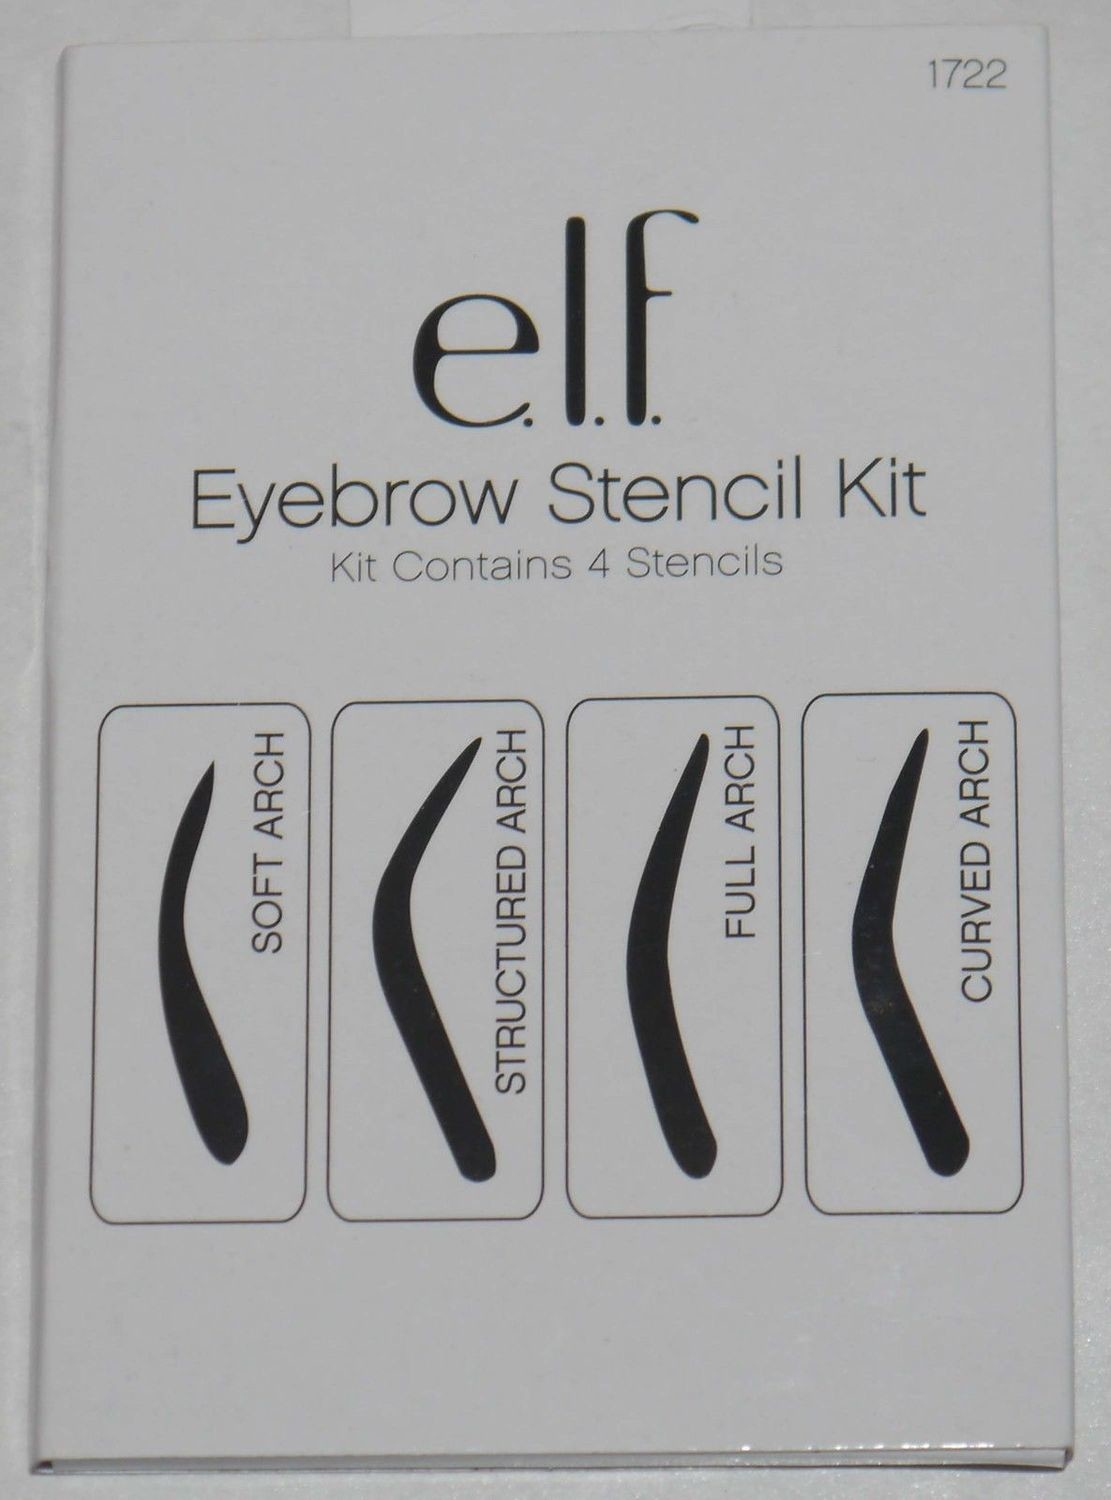 elf Cosmetics 4 Shapes Eyebrow Stencil Kit #1722